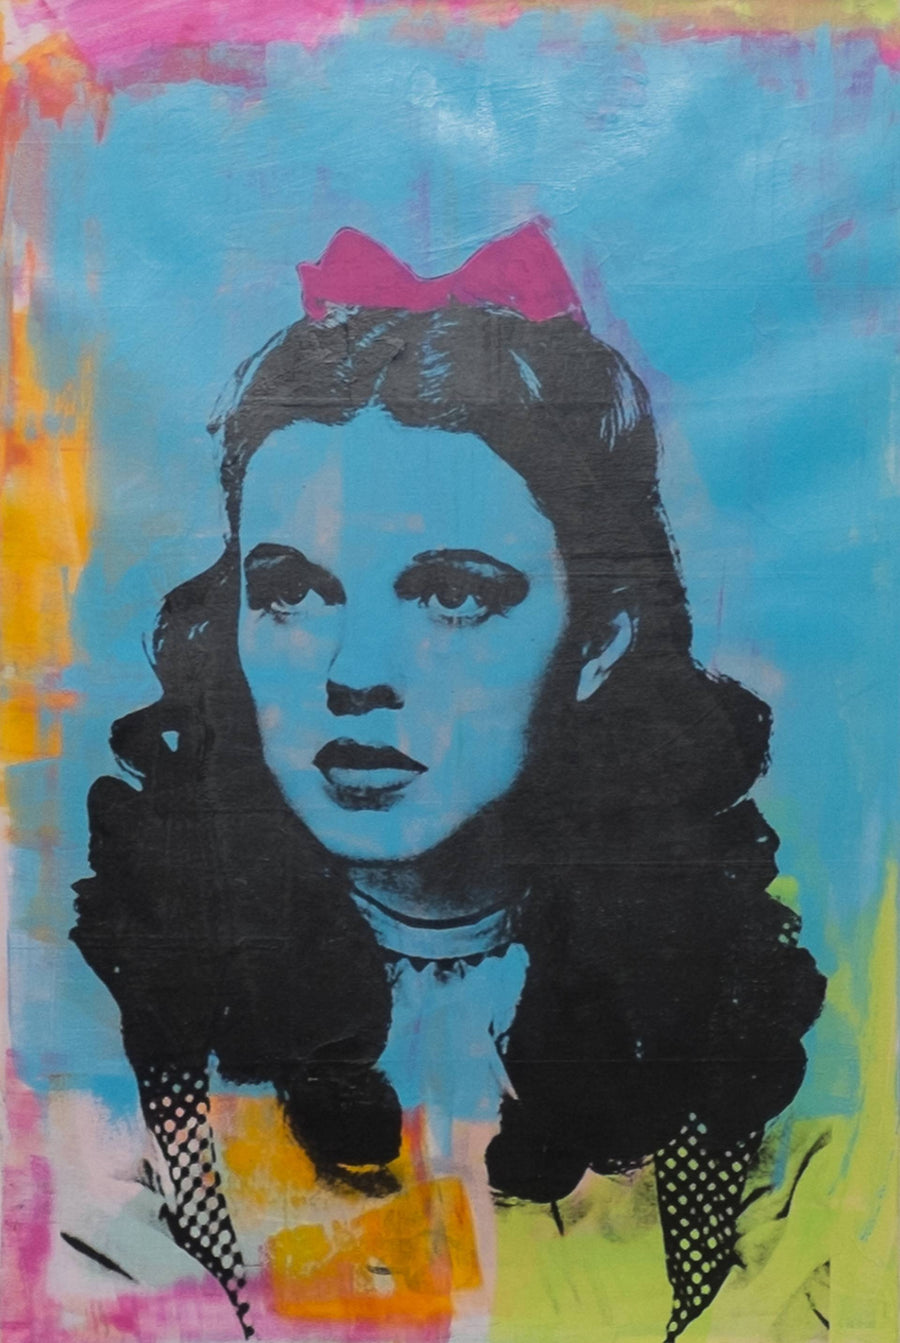 Portrait Painting of Judy Garland in The Wizard of OZ